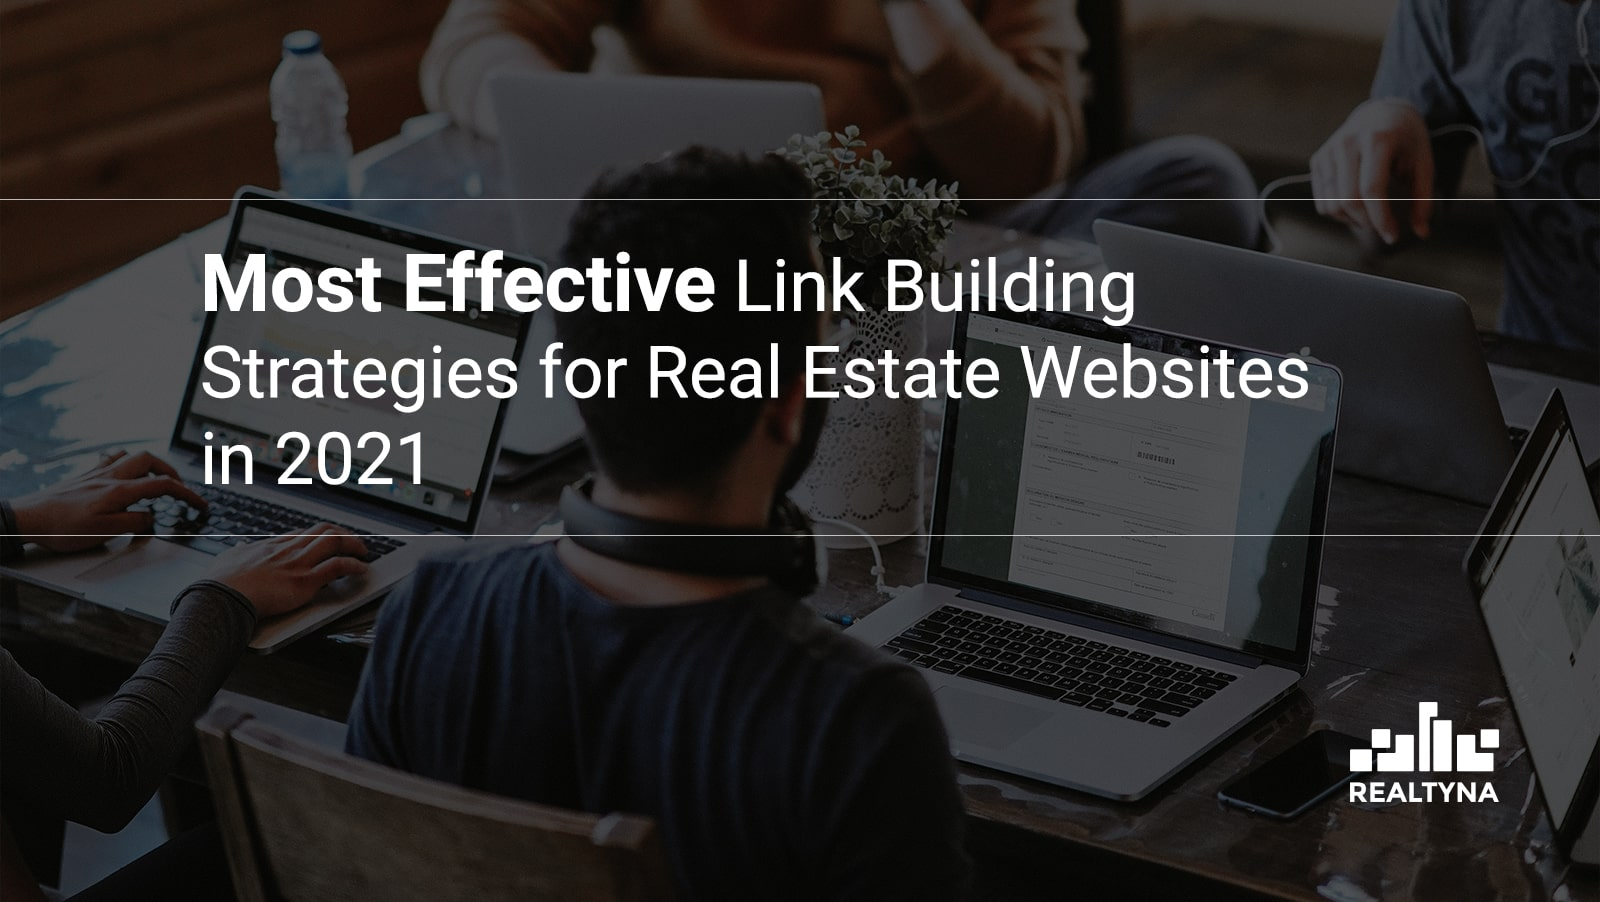 Link building for real estate